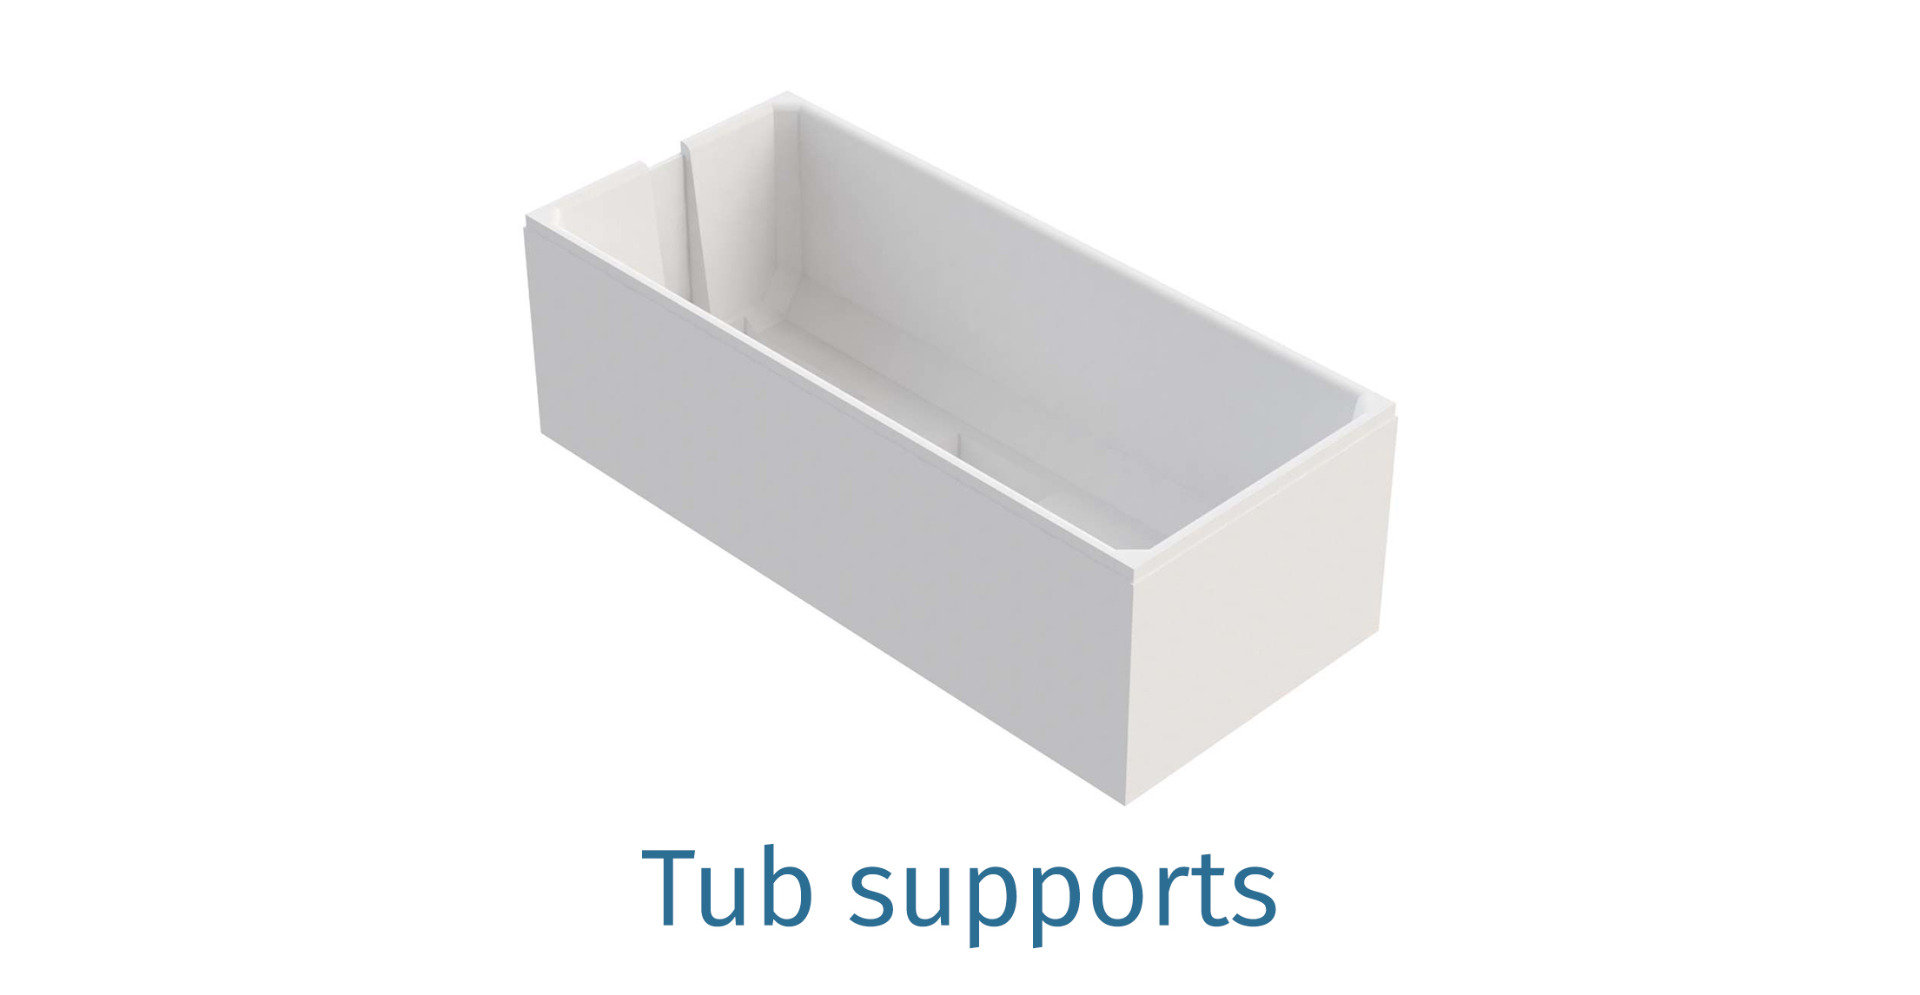 Tub supports